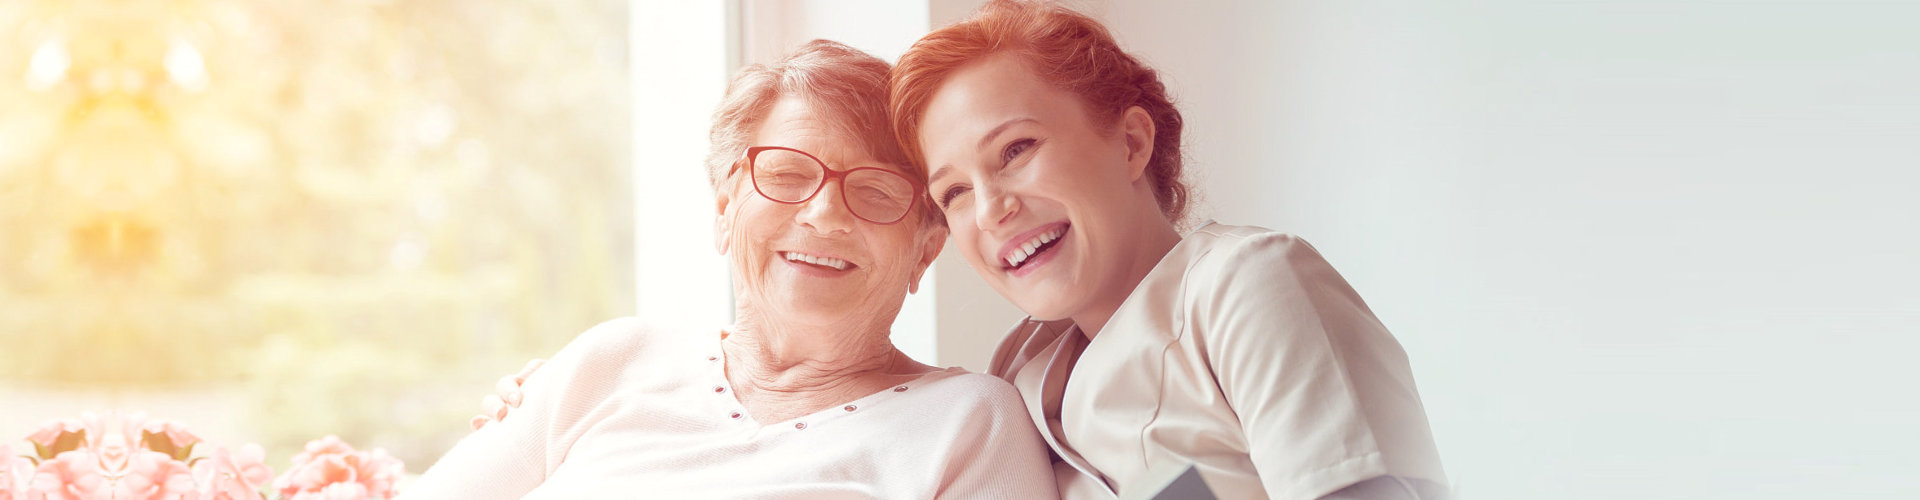 an elderly and a woman smiling